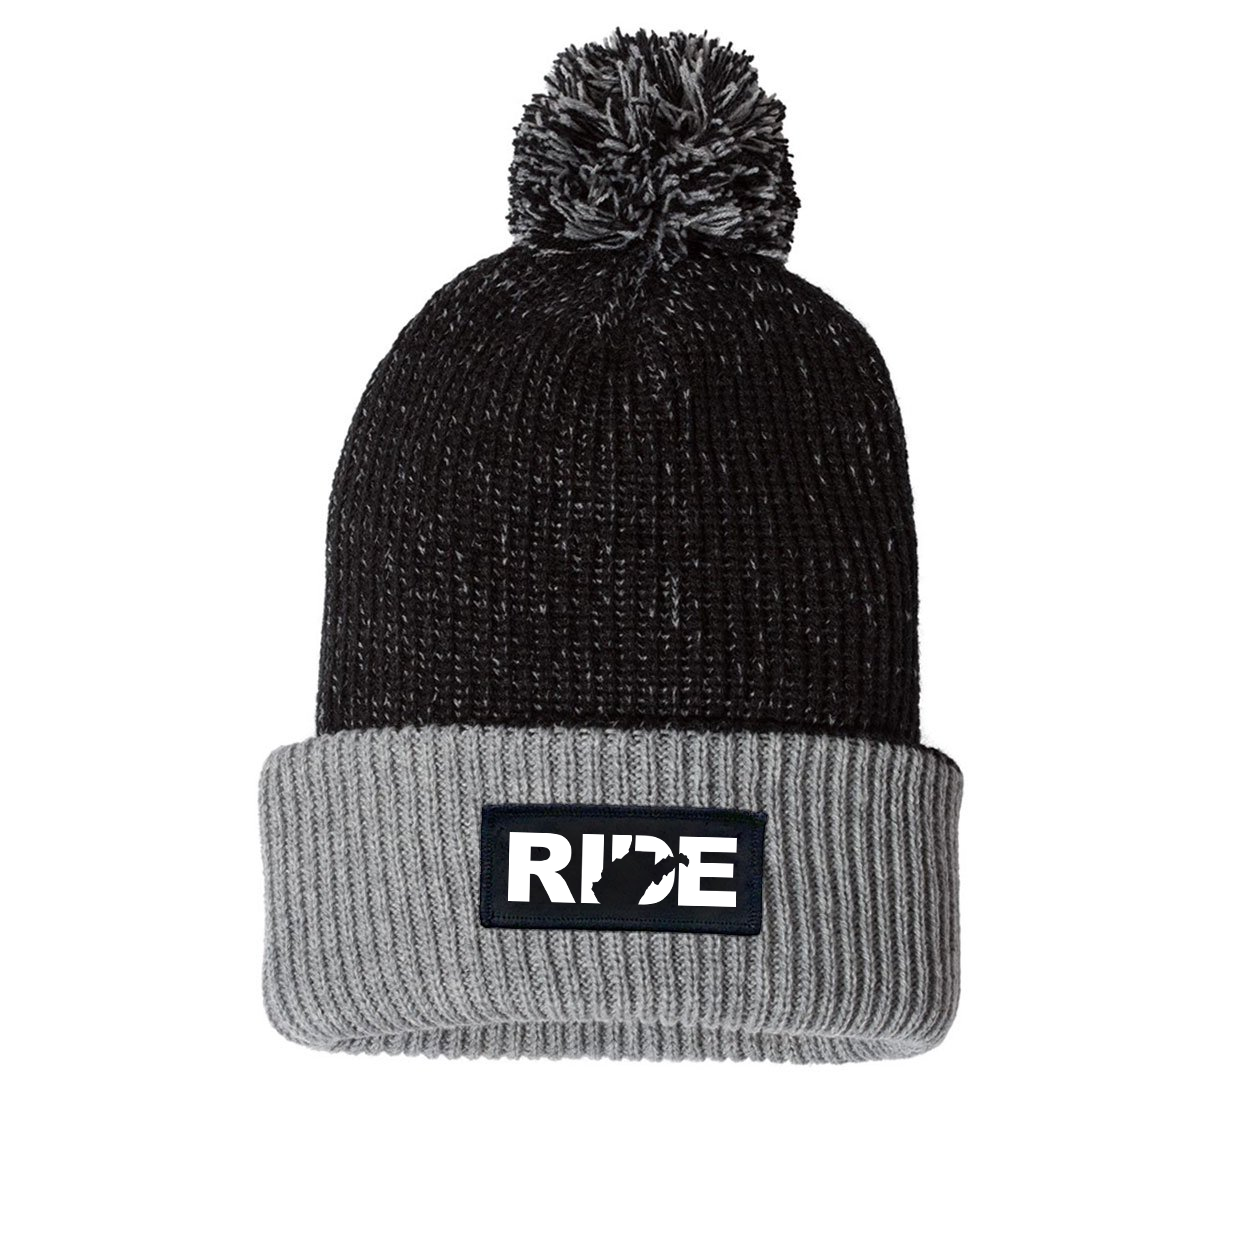 Ride West Virginia Night Out Woven Patch Roll Up Pom Knit Beanie Black/Gray (White Logo)